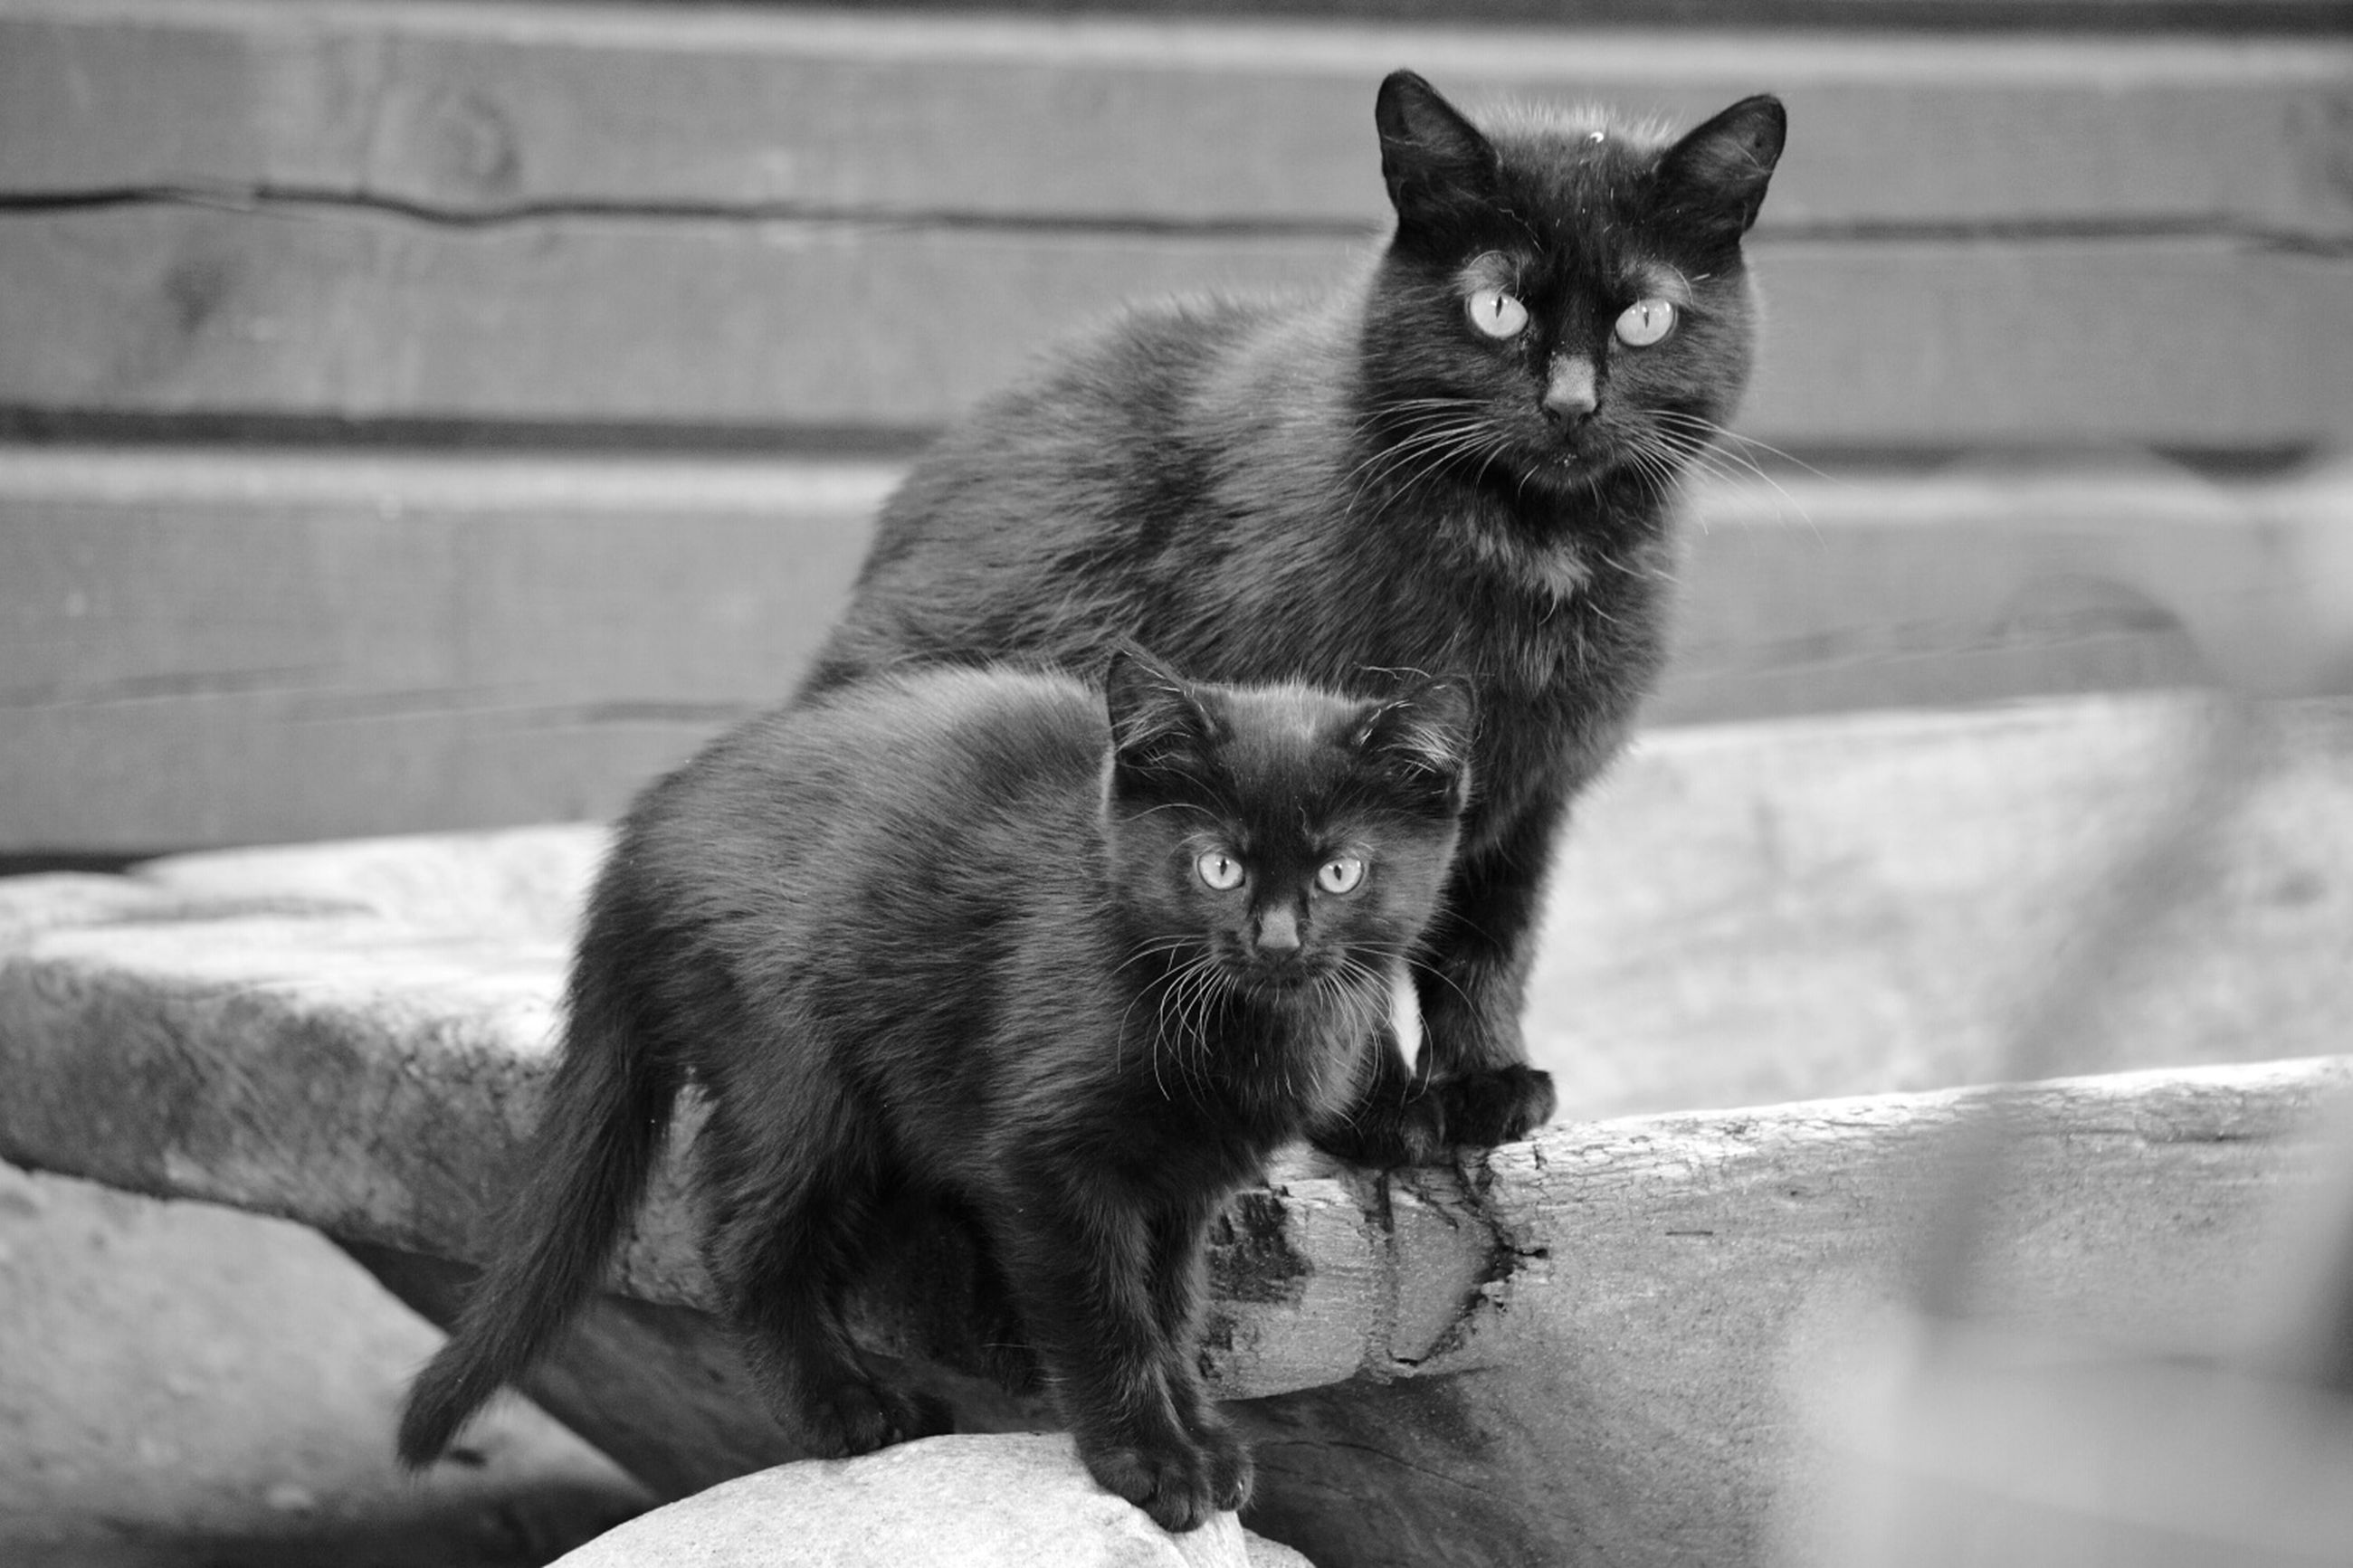 animal themes, one animal, domestic cat, pets, mammal, domestic animals, cat, feline, whisker, looking at camera, portrait, sitting, close-up, focus on foreground, staring, black color, alertness, indoors, front view